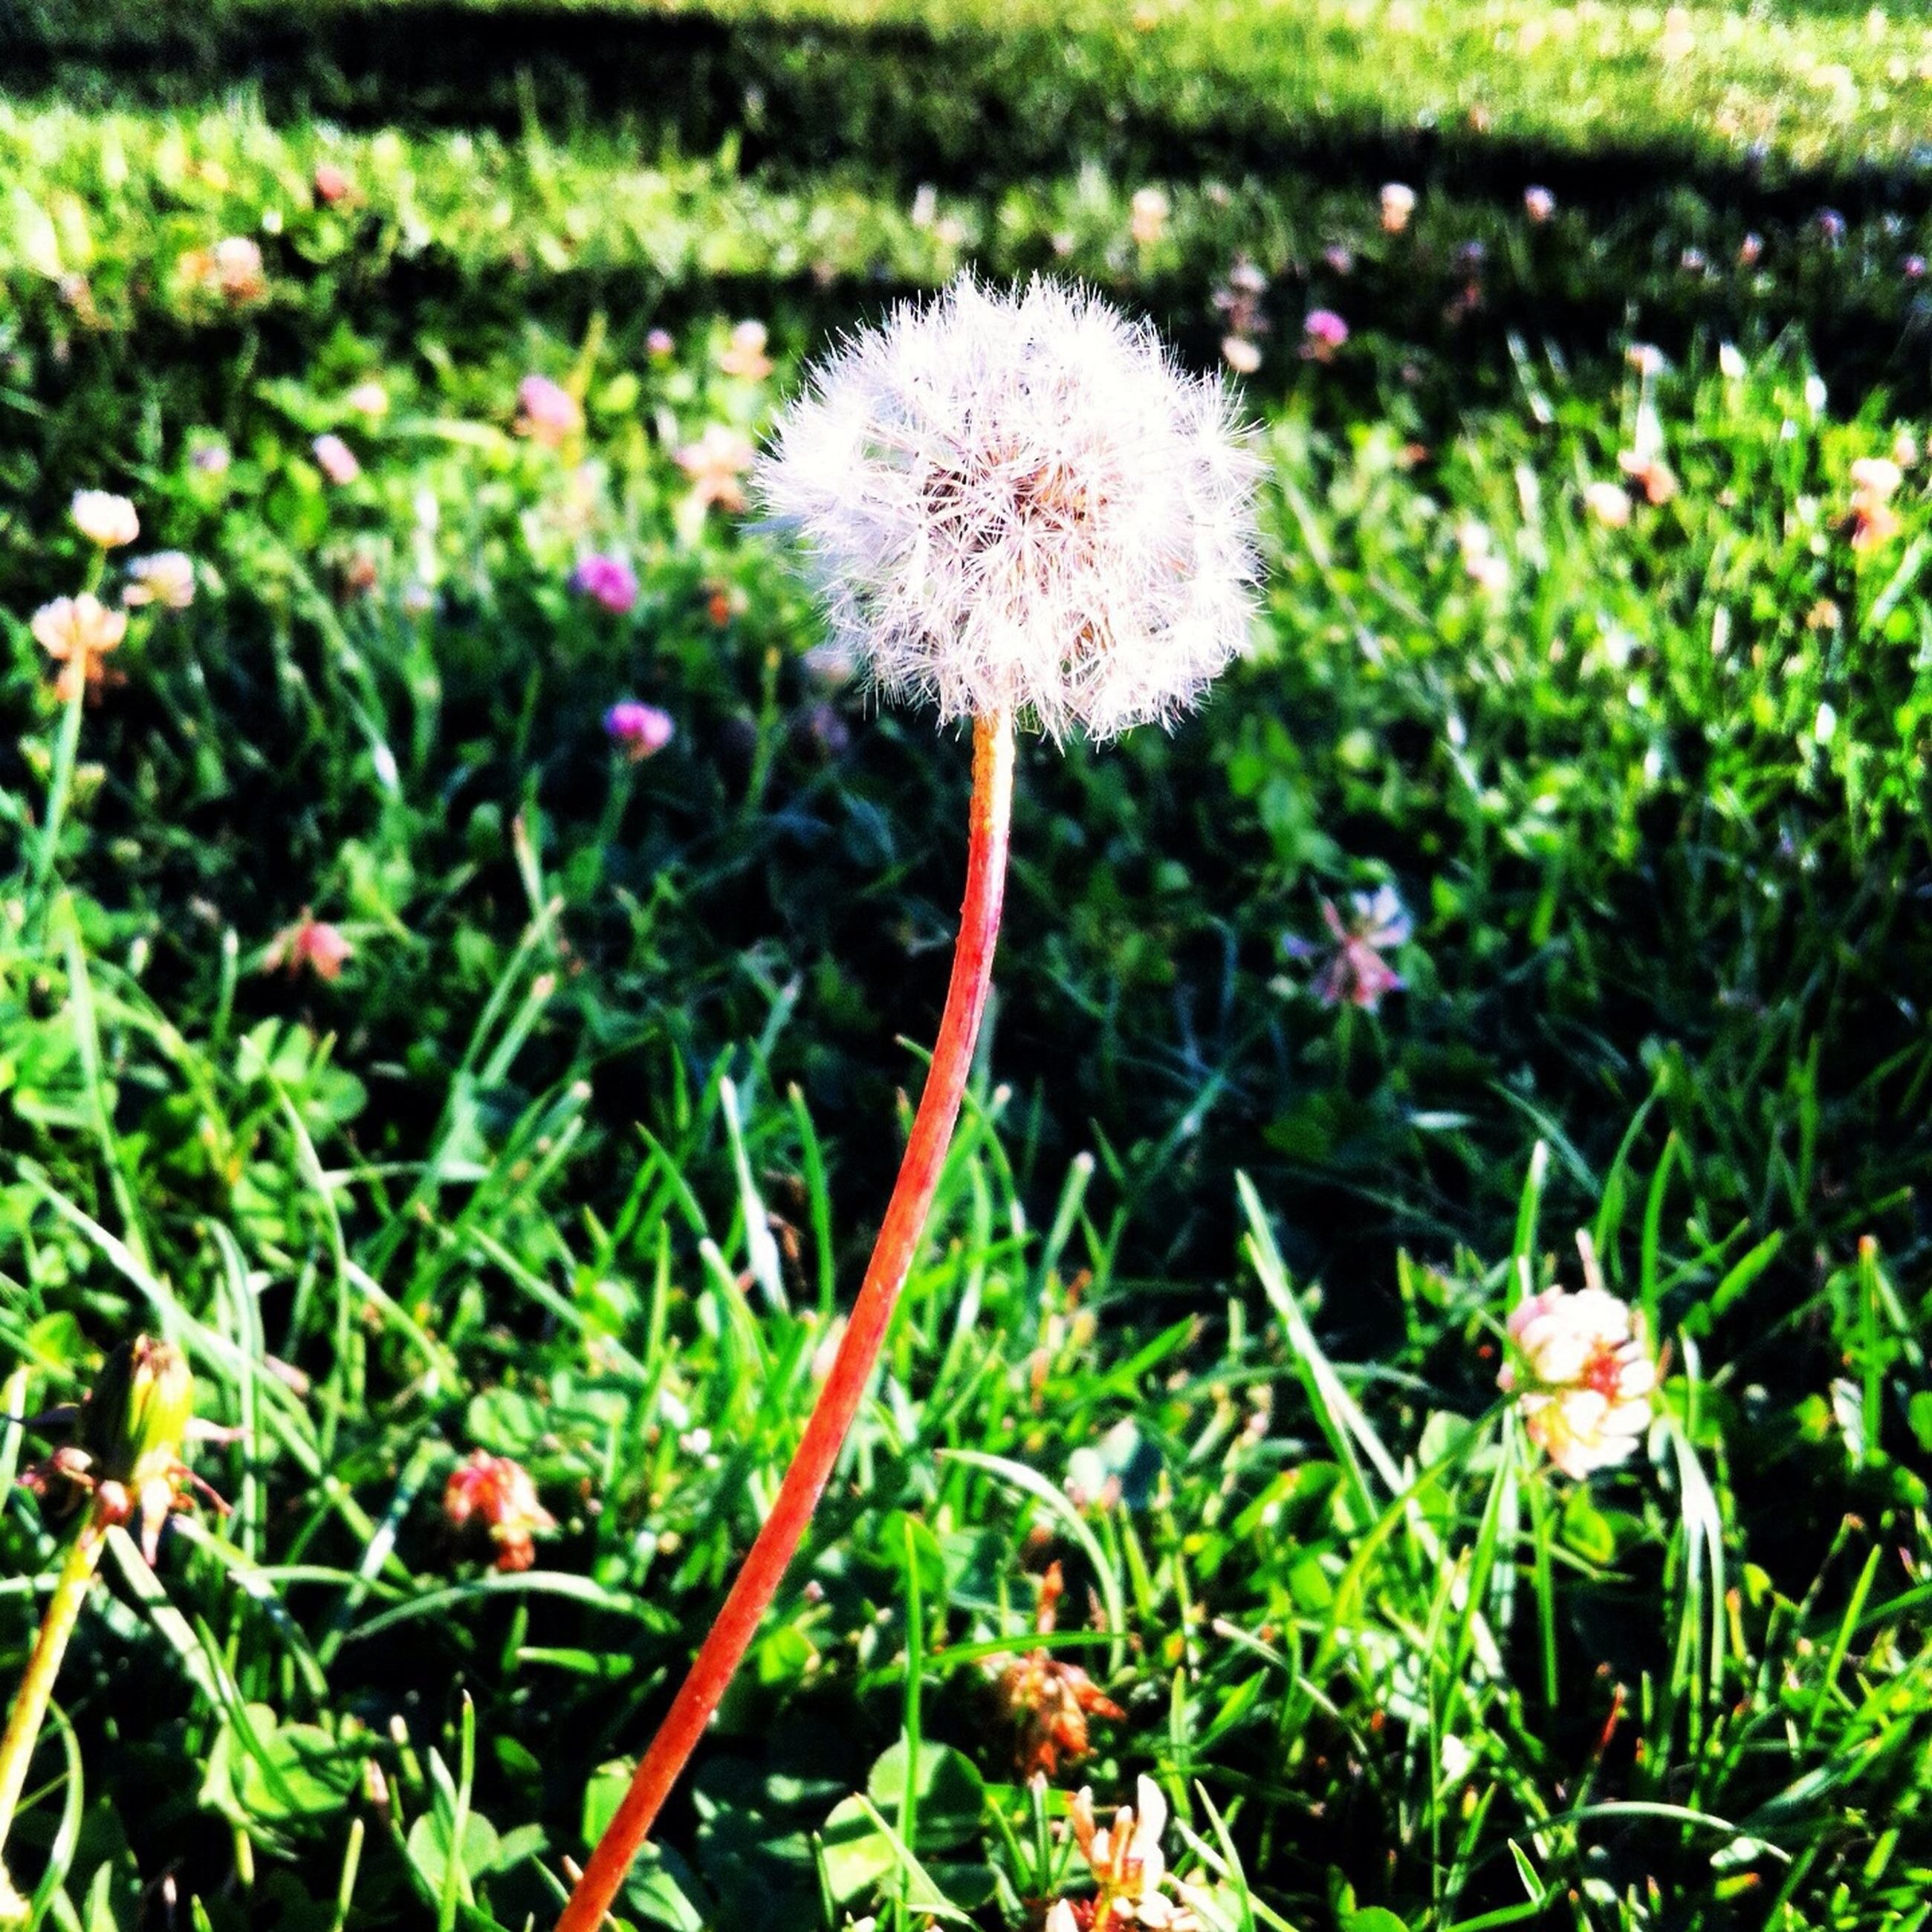 flower, growth, freshness, fragility, dandelion, flower head, beauty in nature, plant, nature, field, stem, wildflower, blooming, focus on foreground, petal, uncultivated, grass, in bloom, green color, close-up